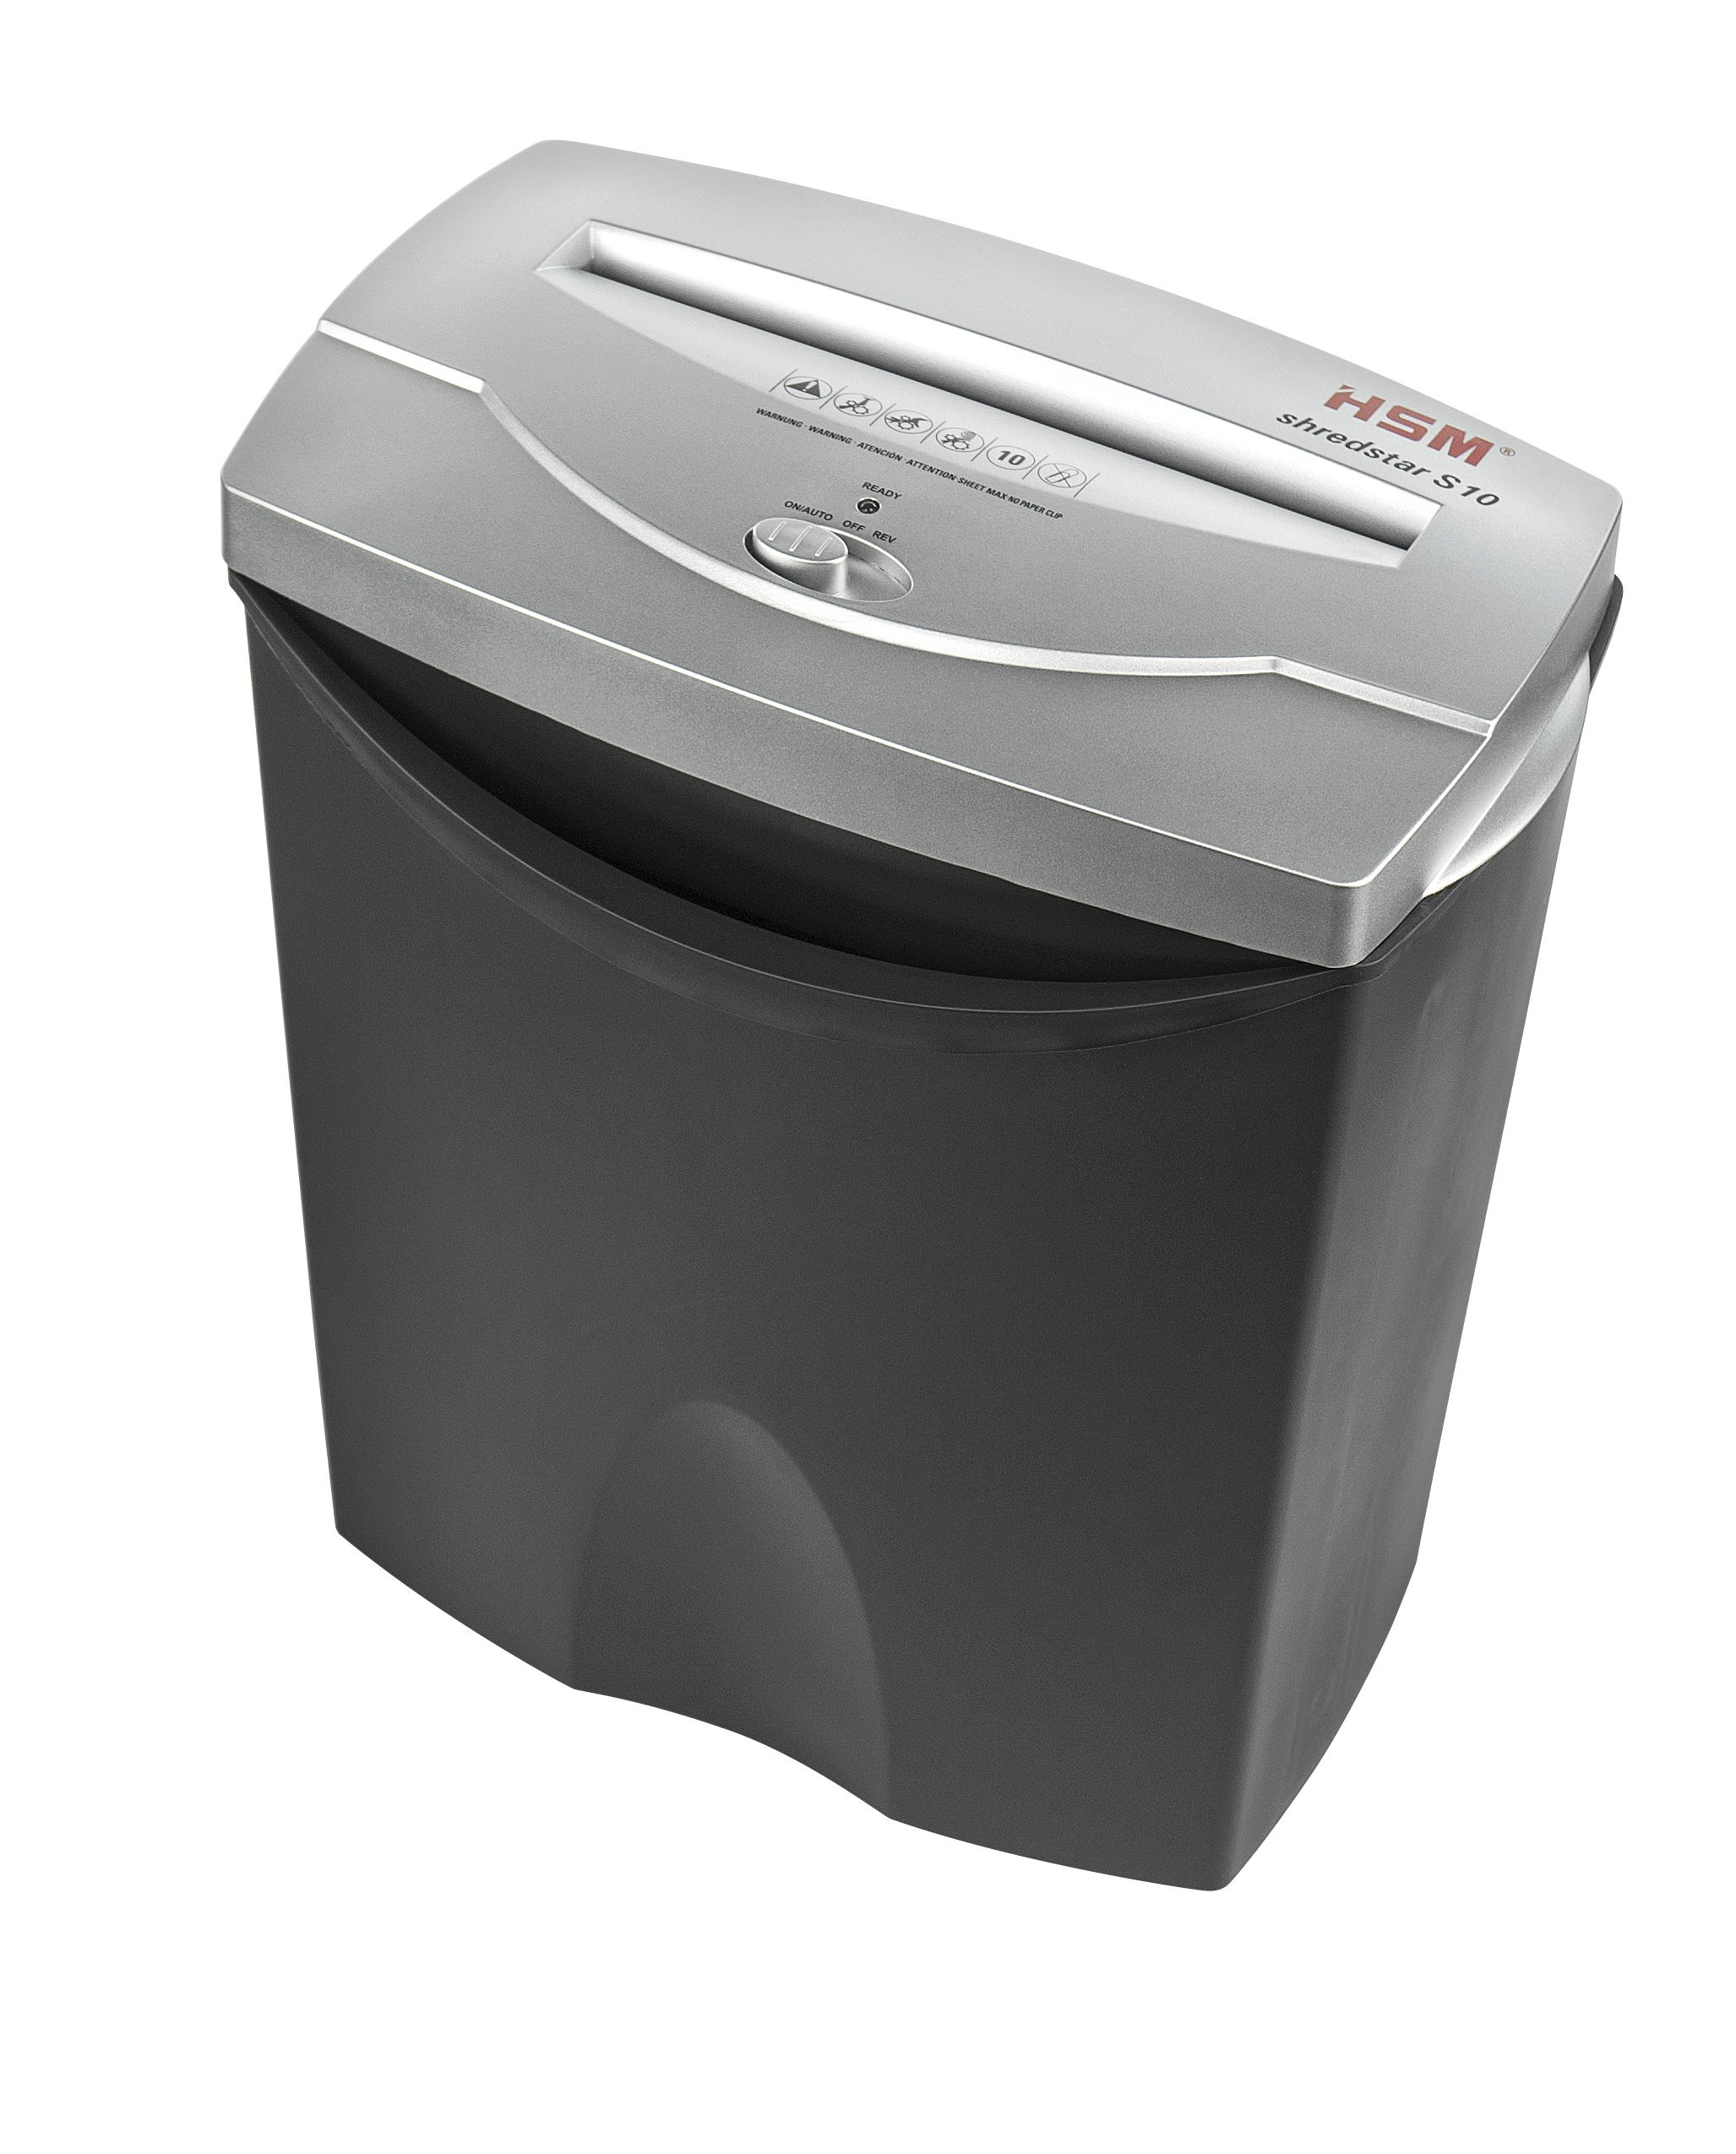 HSM shredstar S10, 10-Sheet Strip-Cut, 4.3-Gallon Capacity Shredder